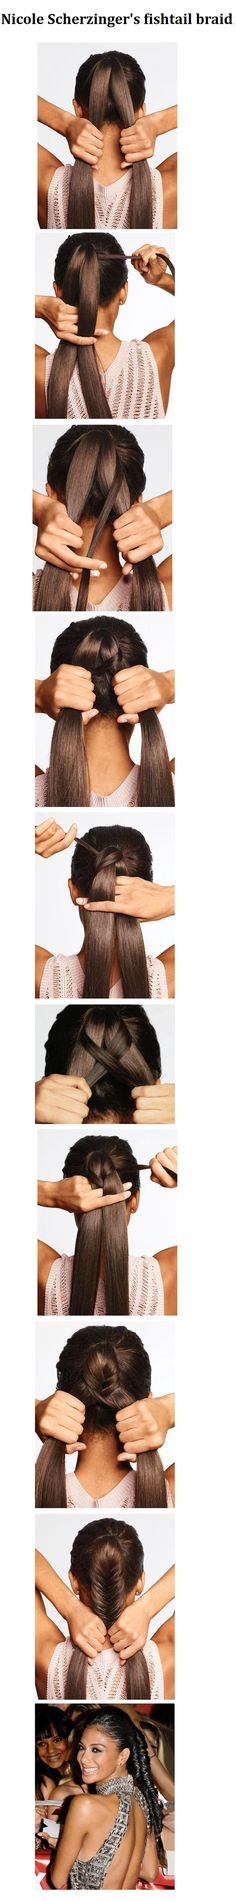 Nicole Scherzinger's fishtail braid - this breaks it down perfectly. Nicole Scherzinger's fishtail braid - this breaks it down perfectly. Pretty Hairstyles, Braided Hairstyles, Latest Hairstyles, Great Hair, Hair Day, Gorgeous Hair, Hair Looks, Hair Inspiration, Your Hair